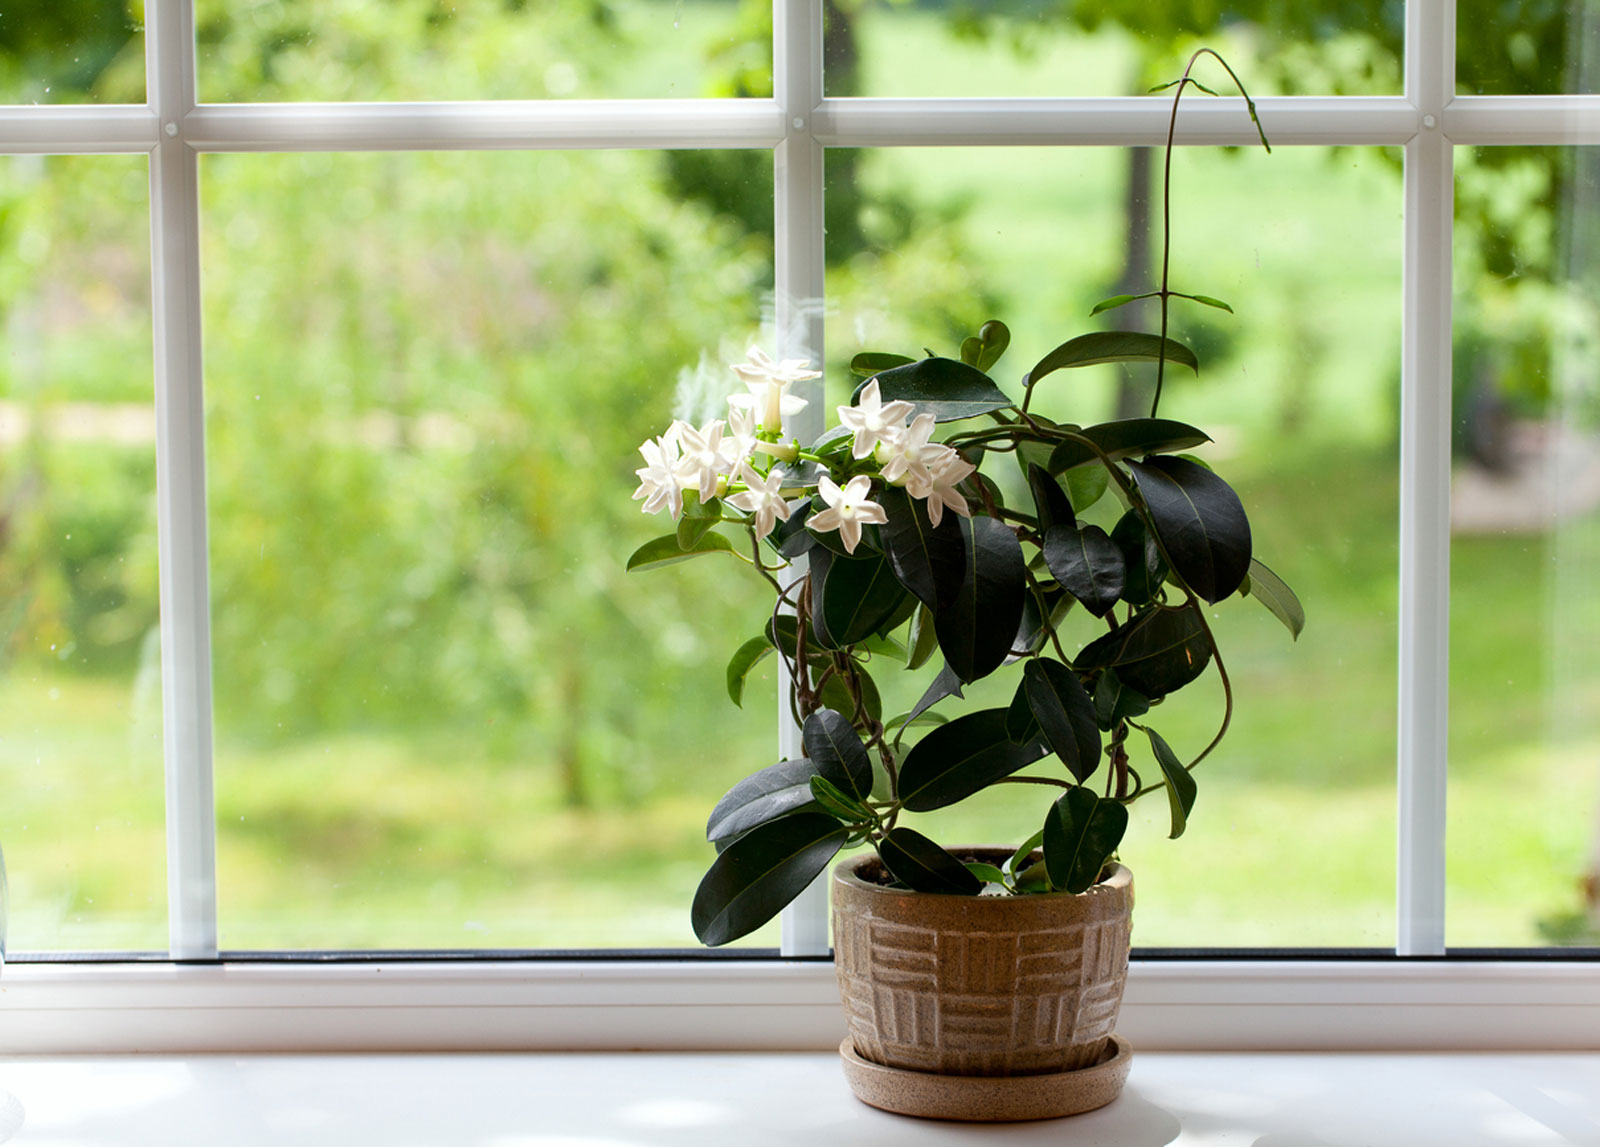 10 House Plants That are Great For Your Kitchen